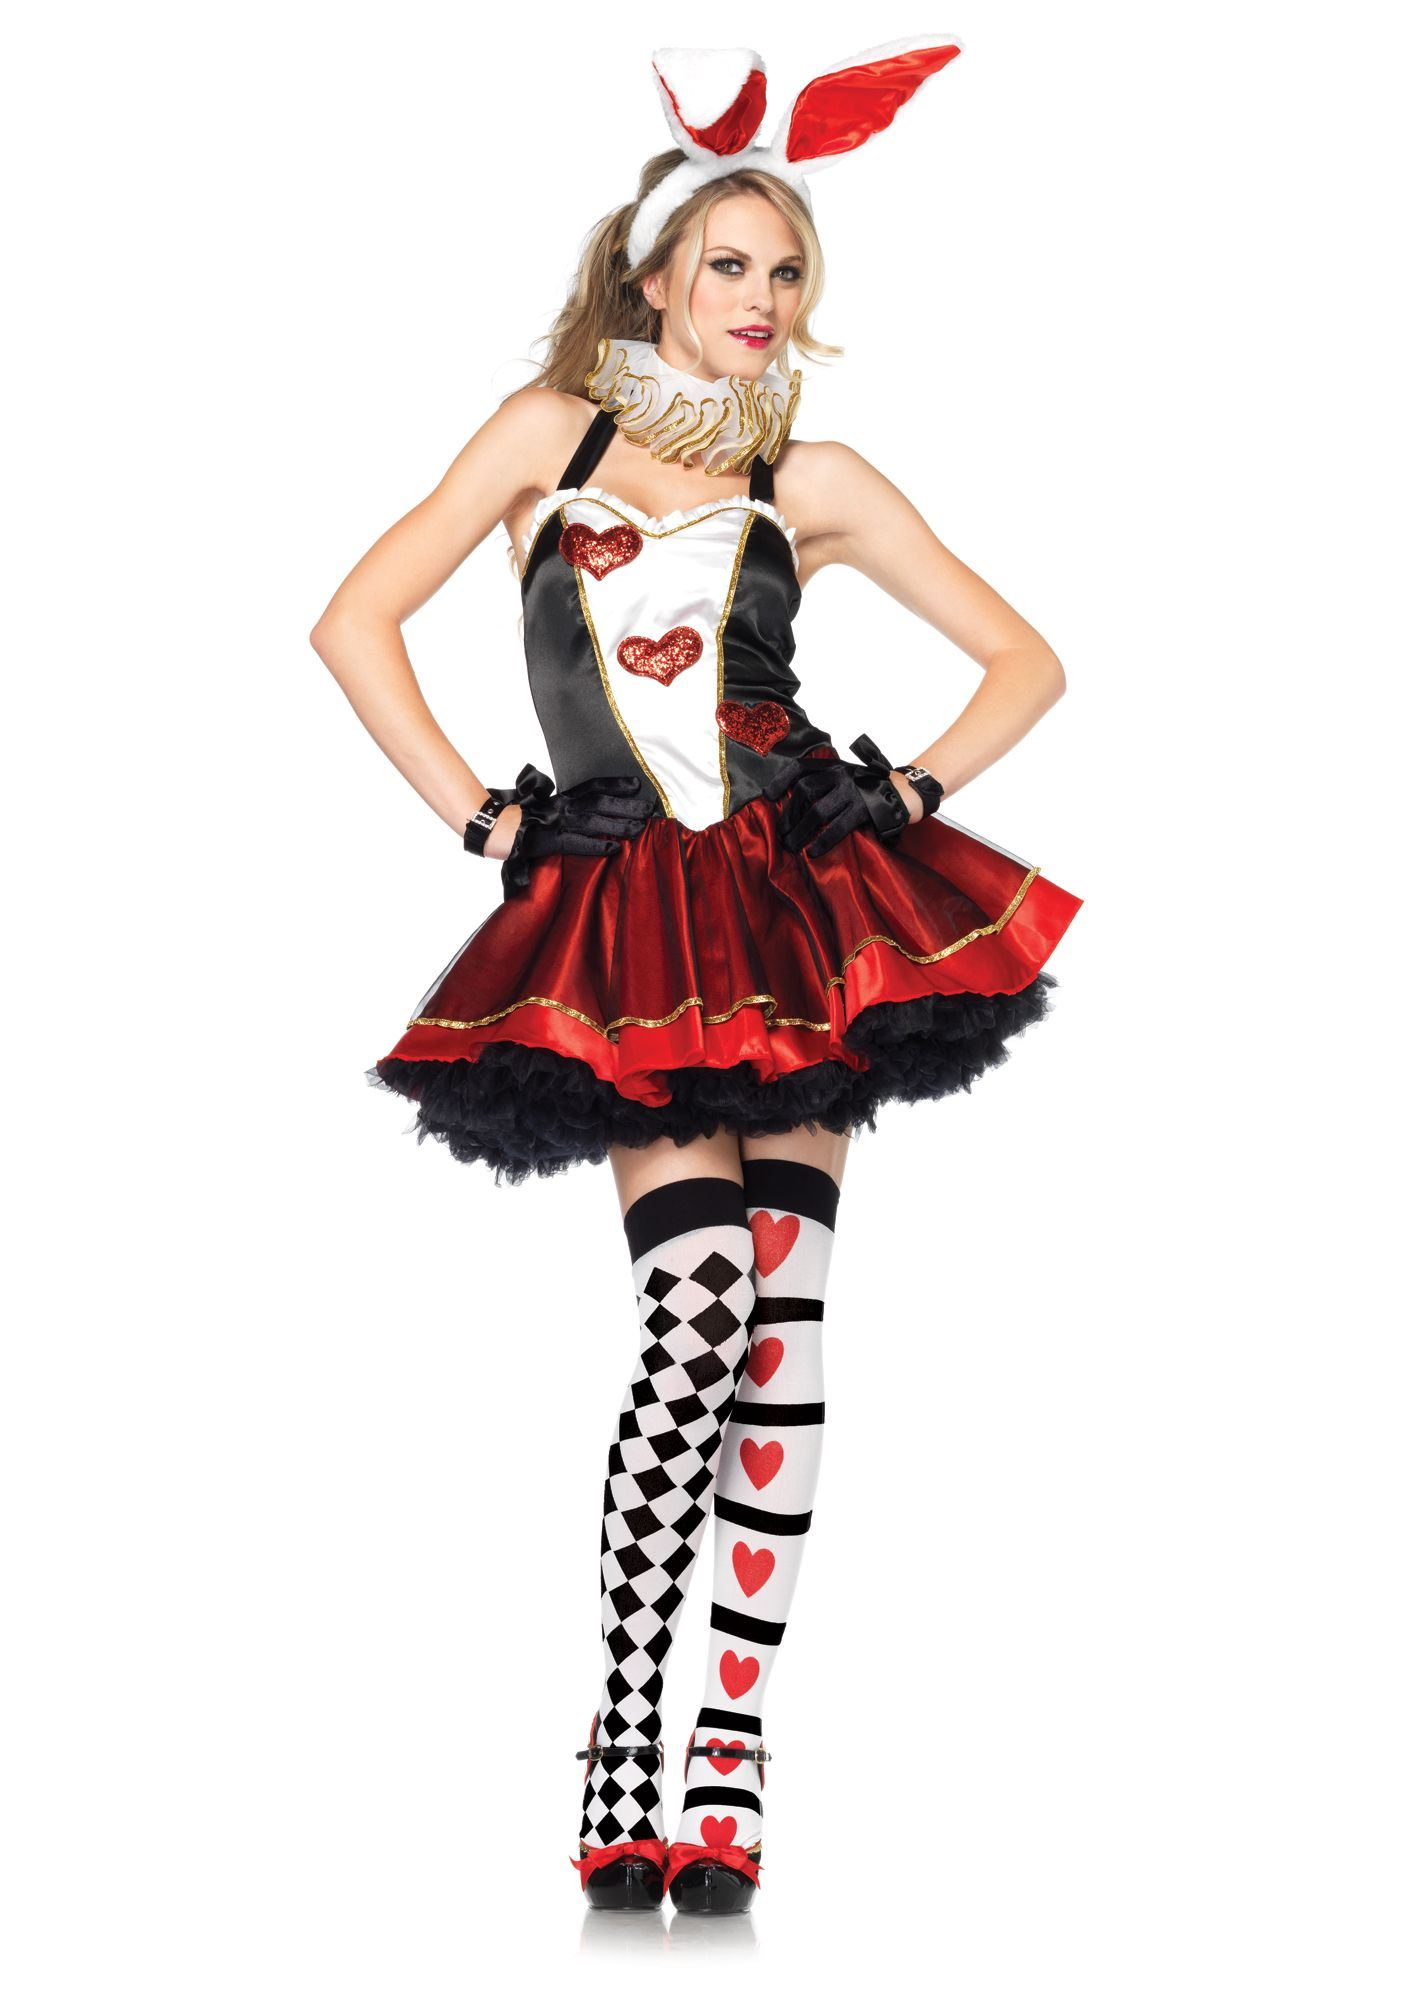 Awesome Bunny Halloween Costumes Pictures - harrop.us - harrop.us